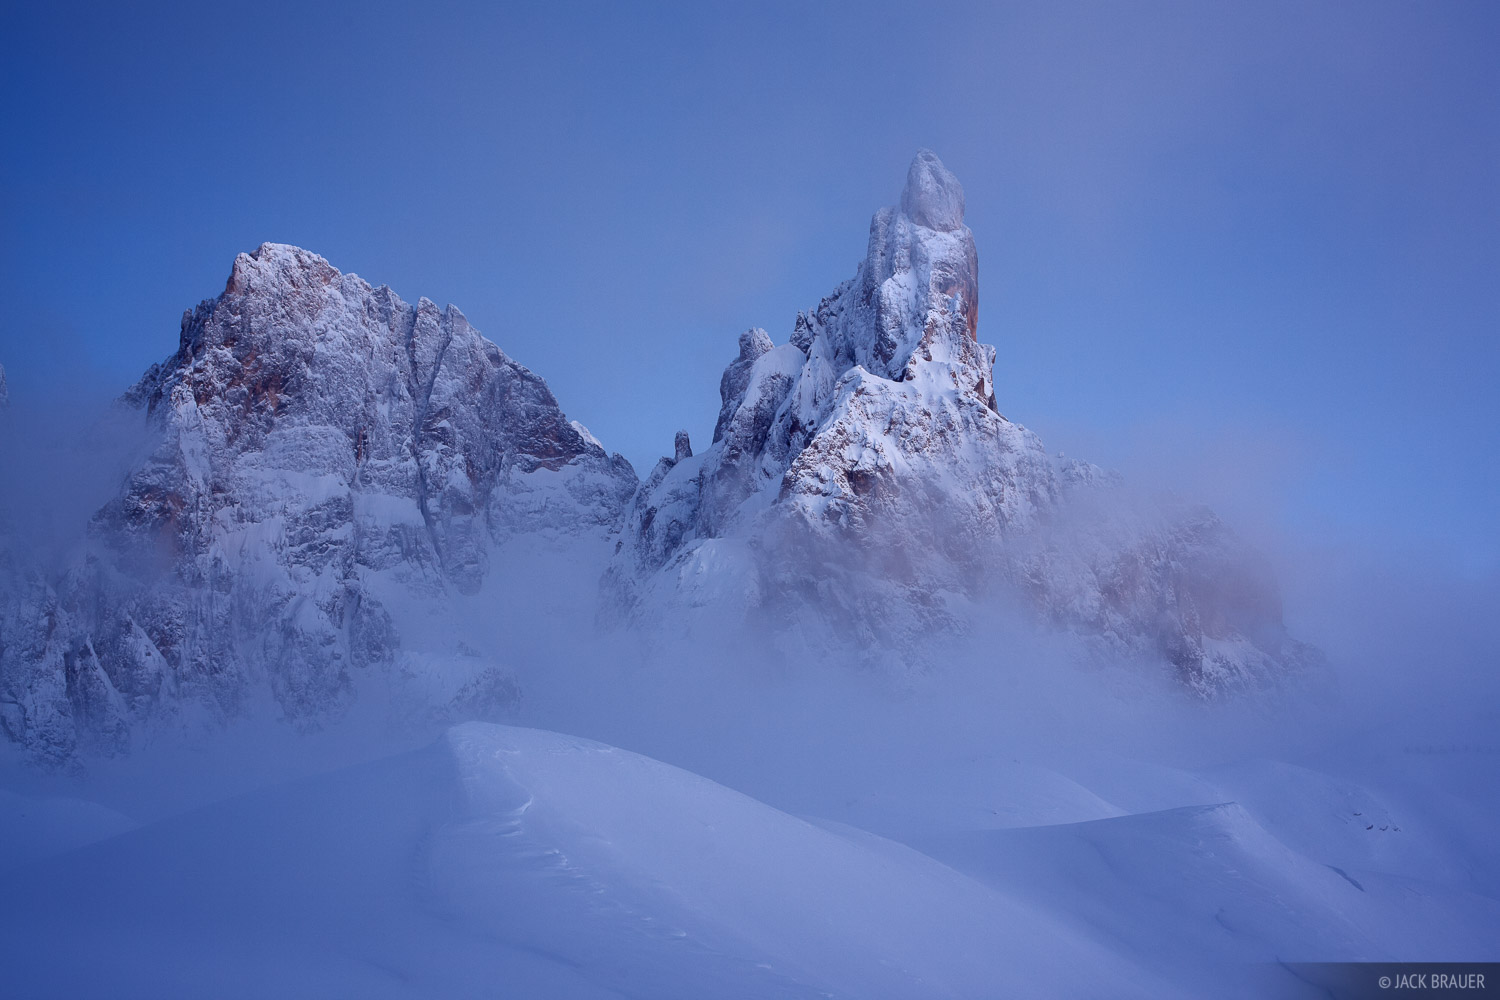 Cimon della Pala, Dolomites, Italy, winter, photo